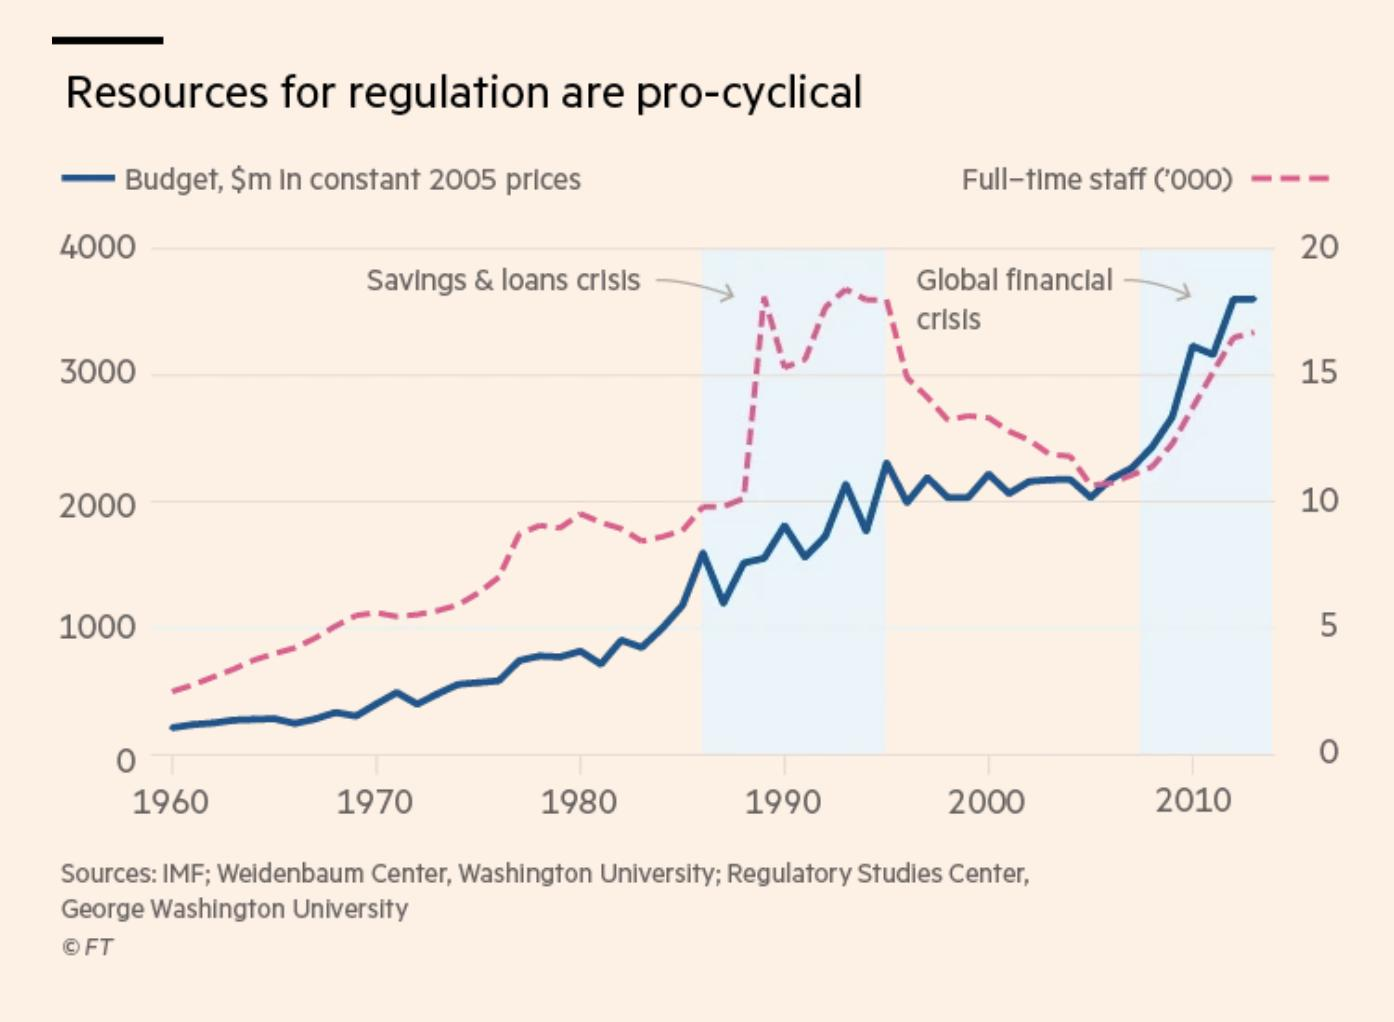 Resources for financial regulation vary…